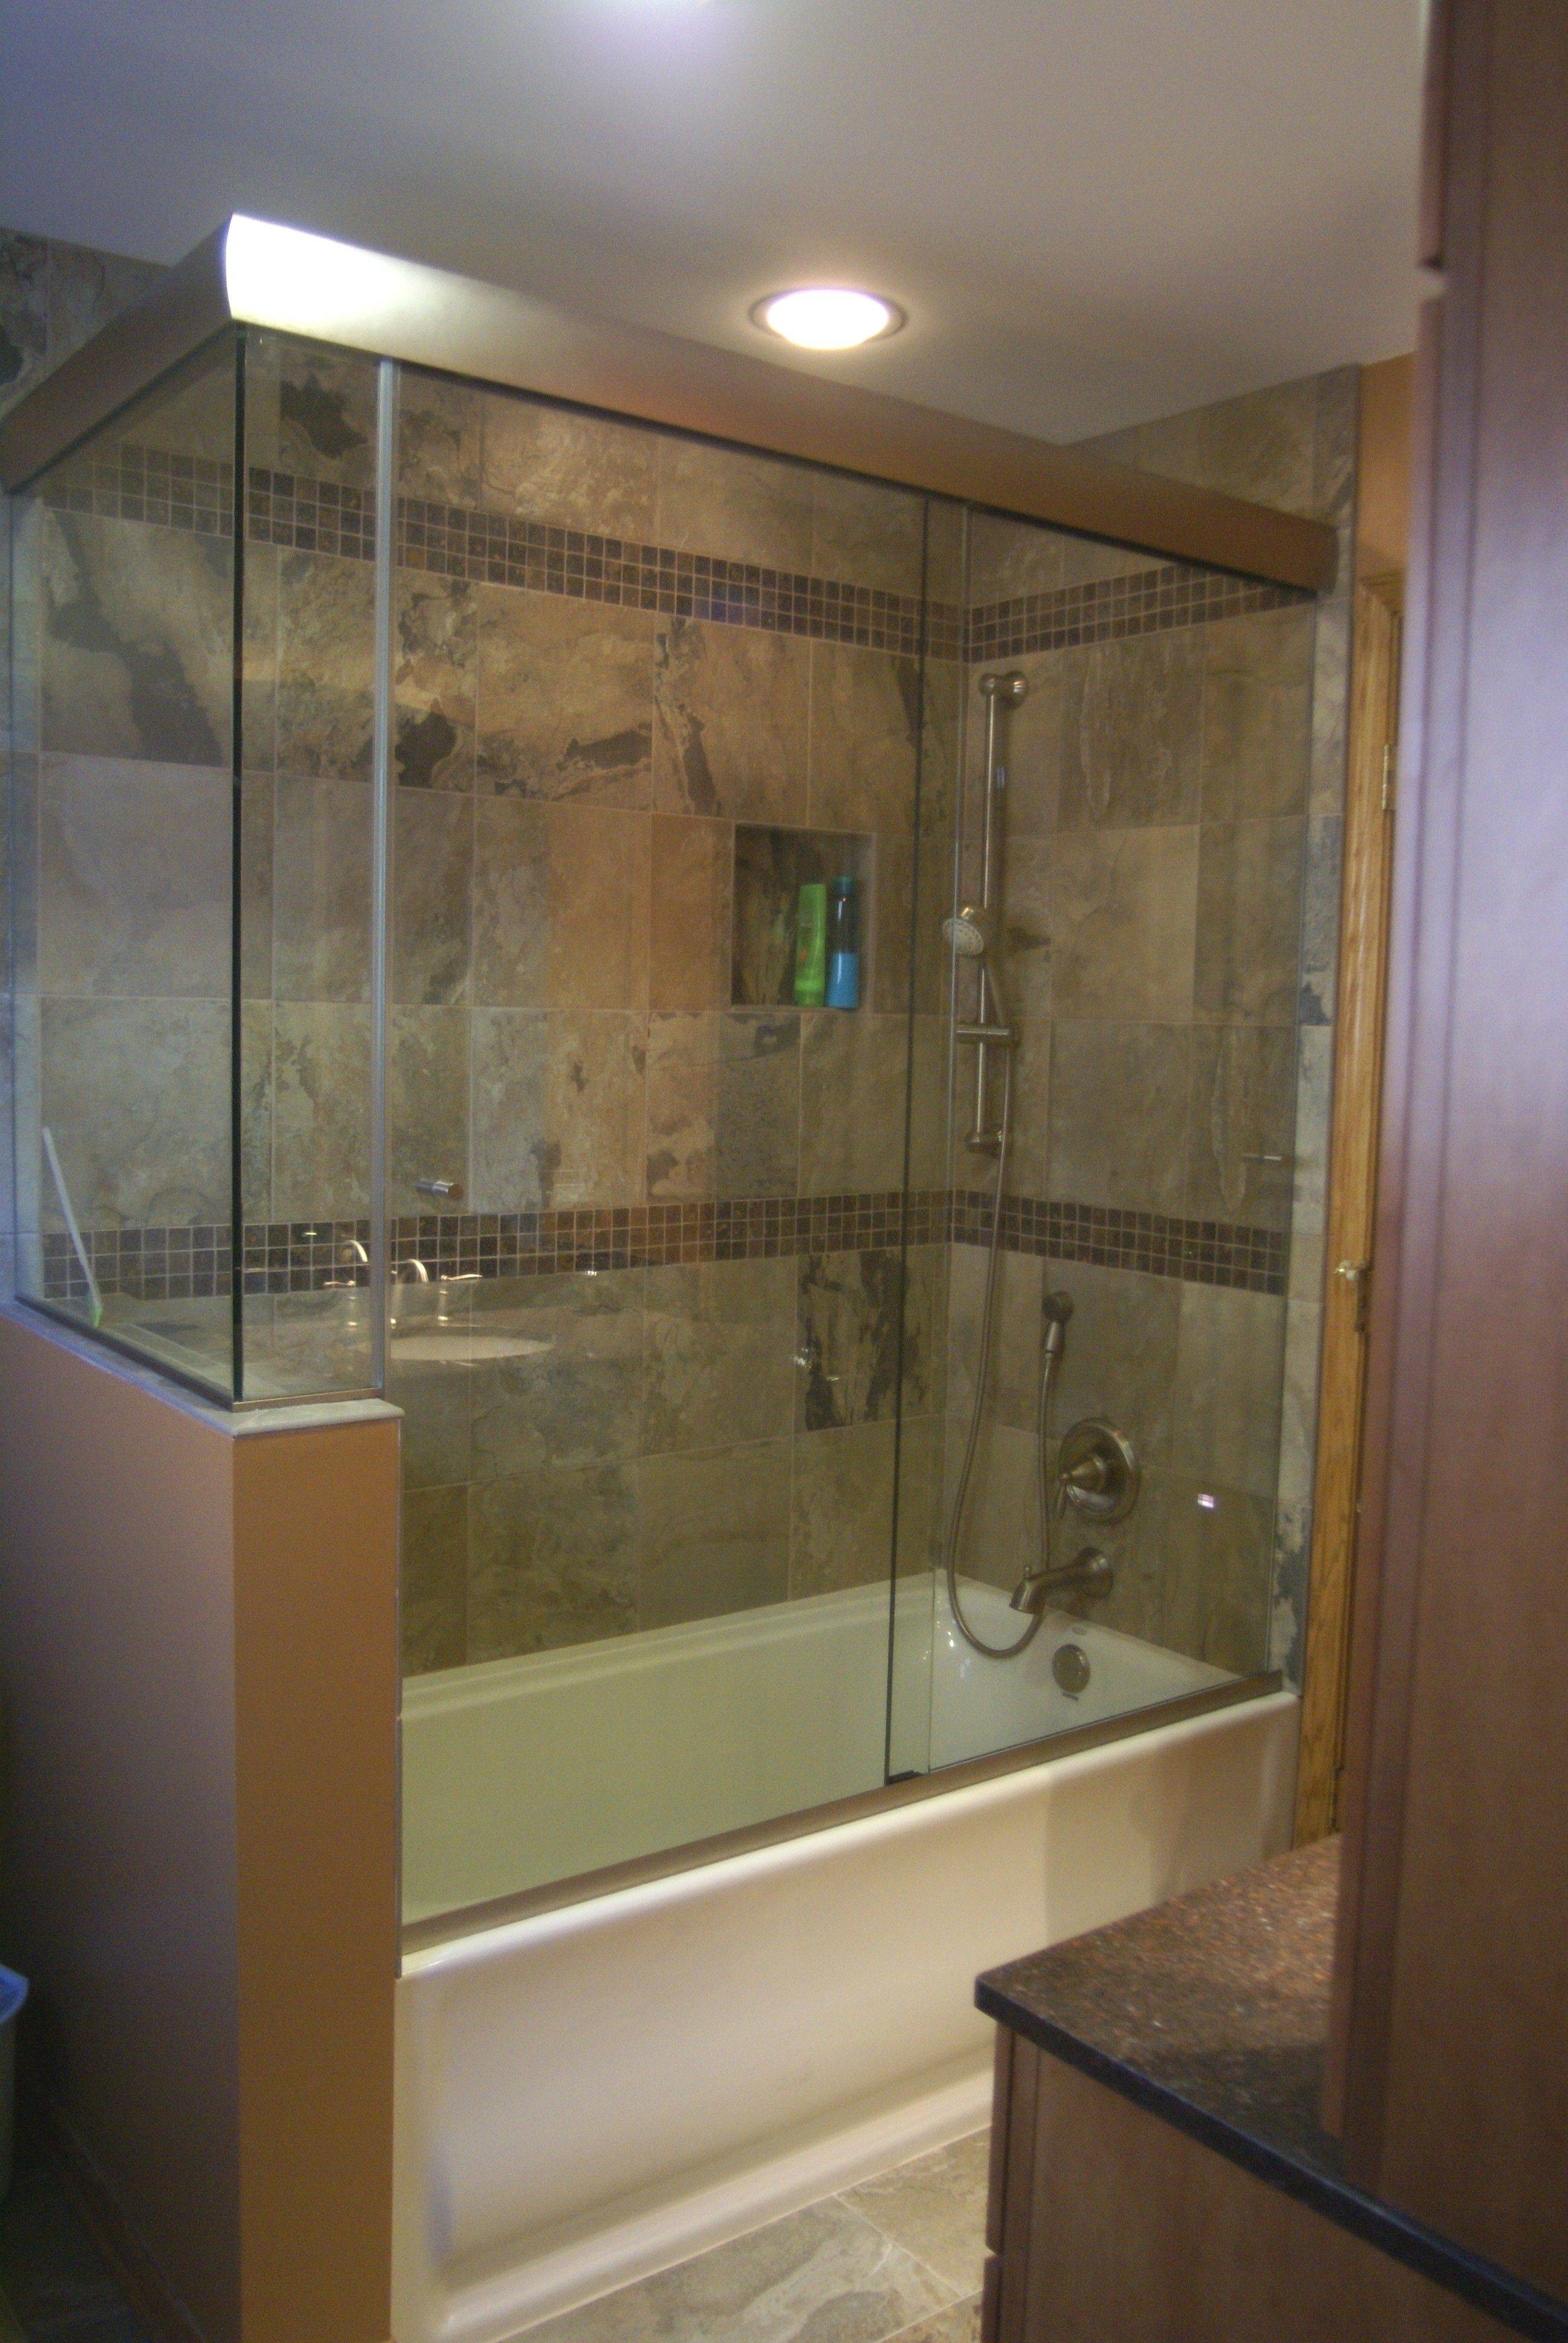 A glass shower enclosure can make a bathroom feel larger in the same amount of space.